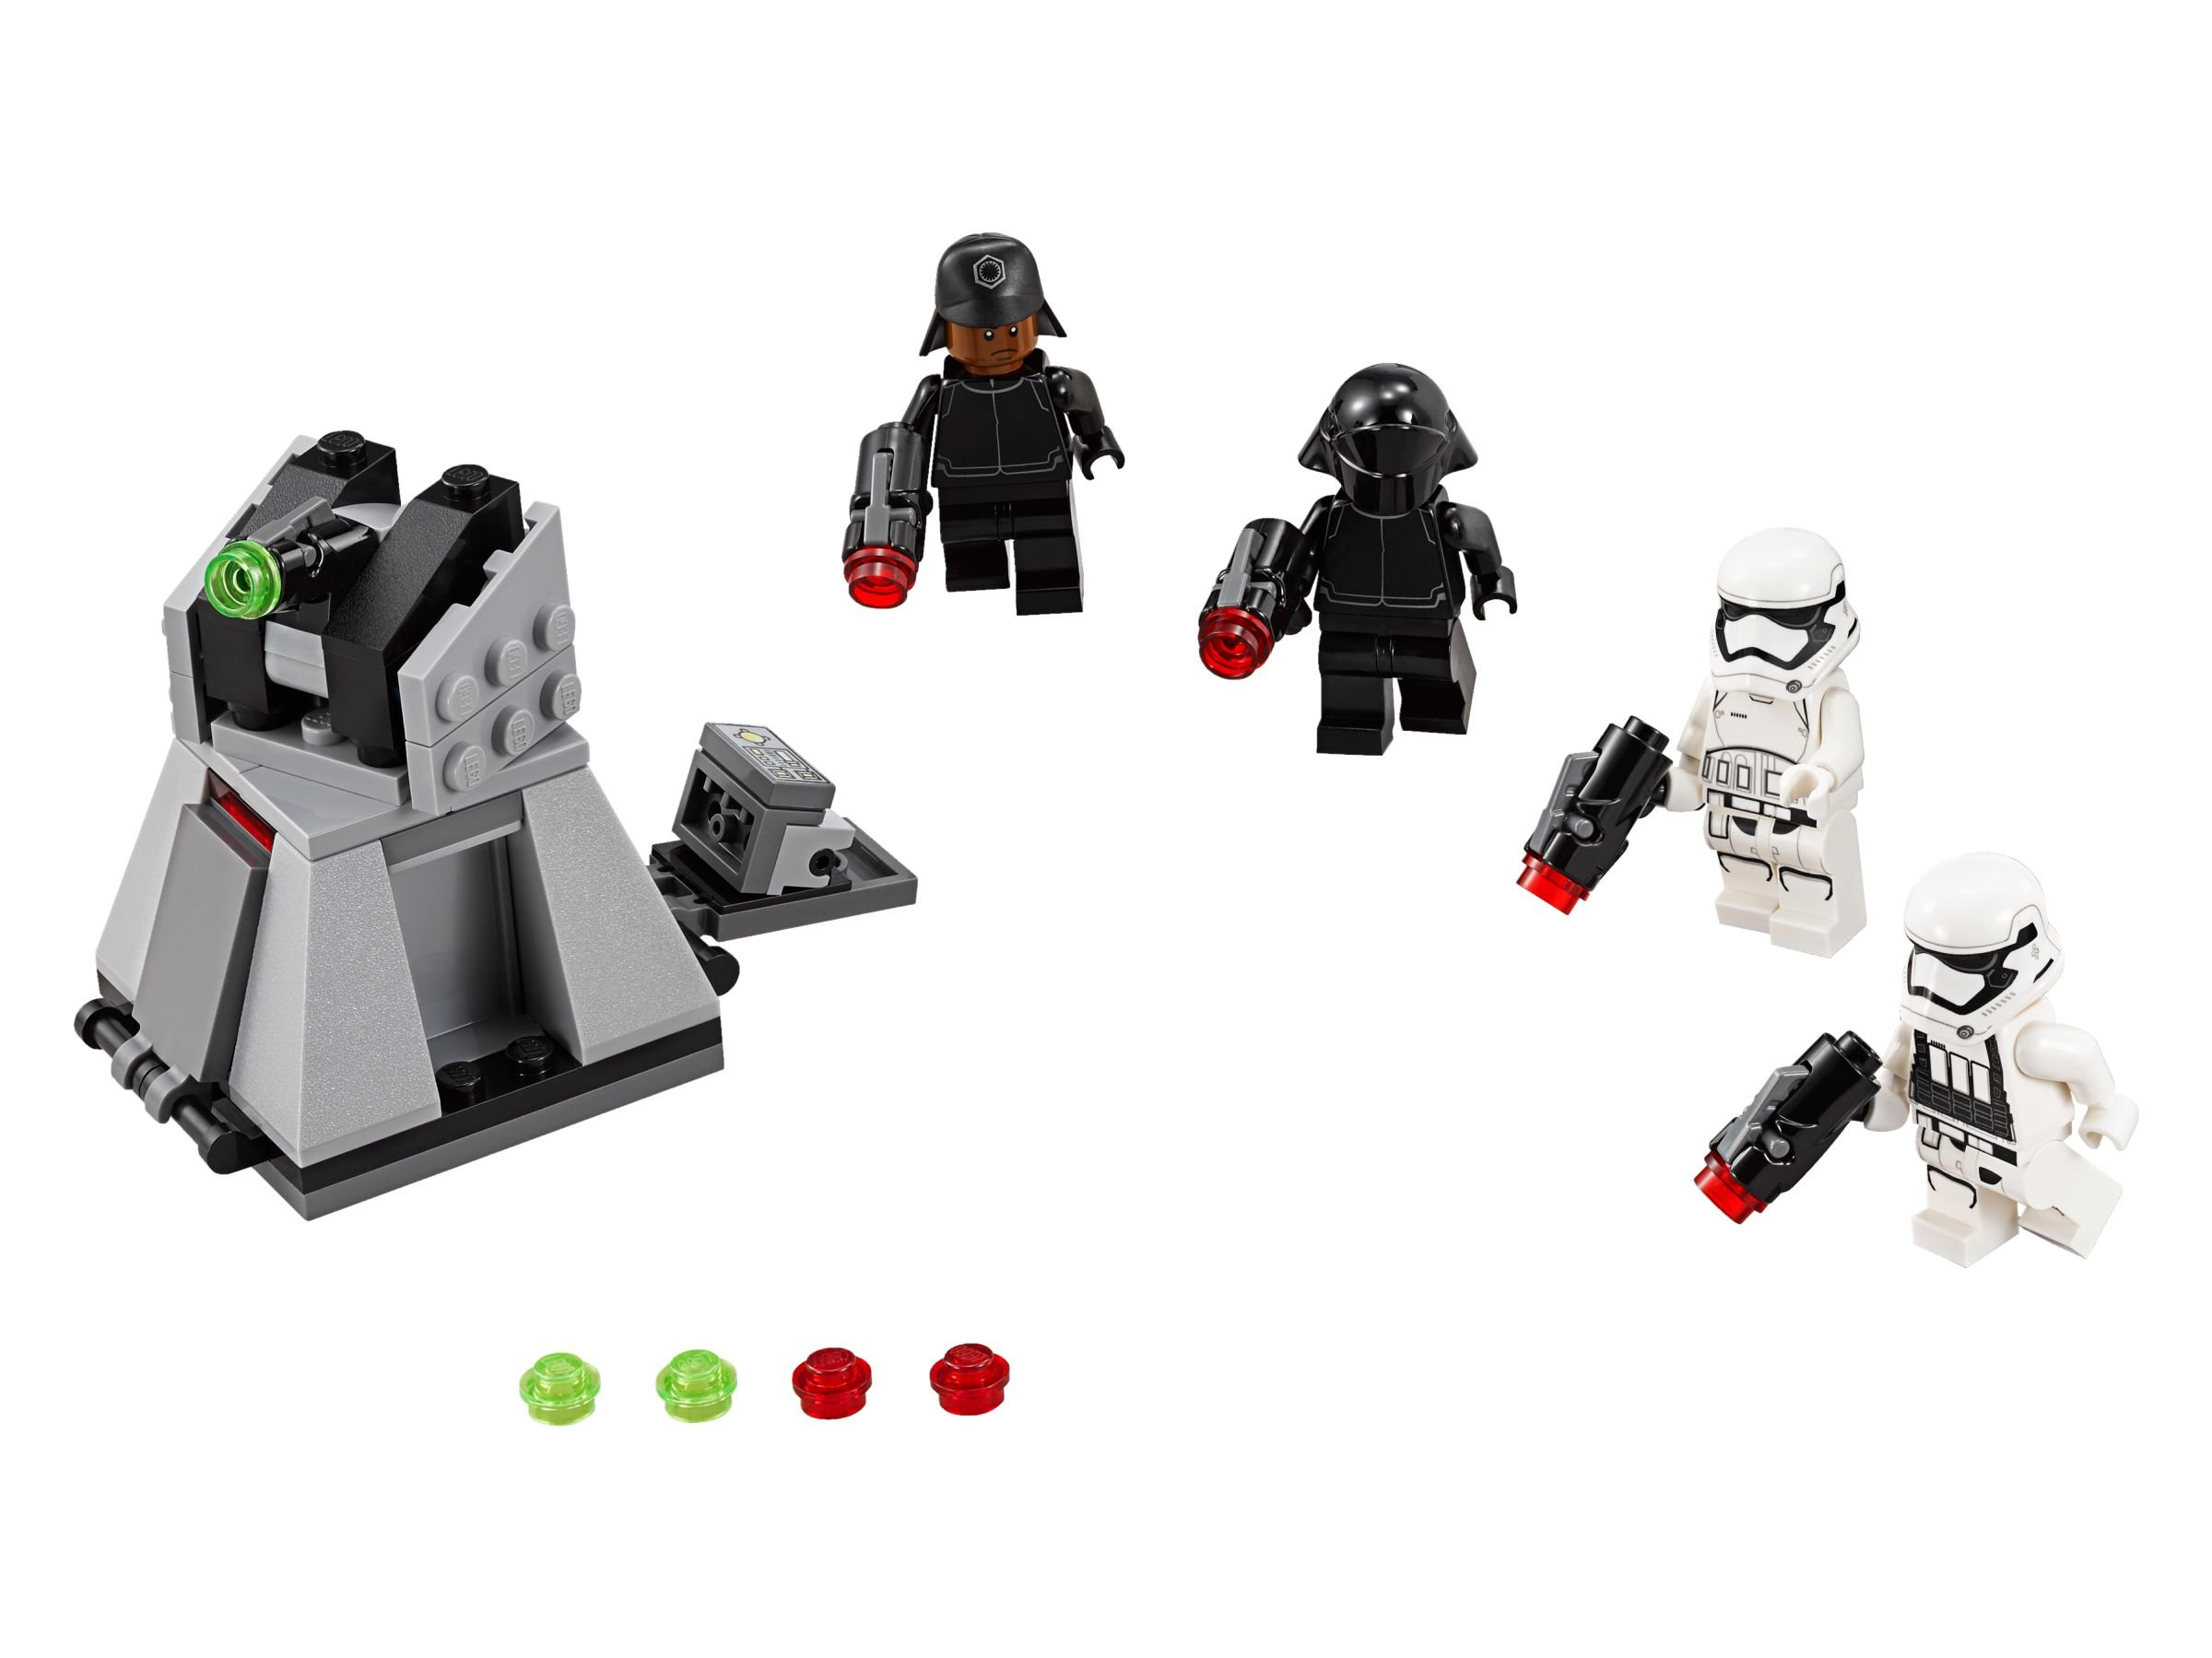 LEGO Star Wars 75132 First Order Battle Pack LEGO_75132.jpg